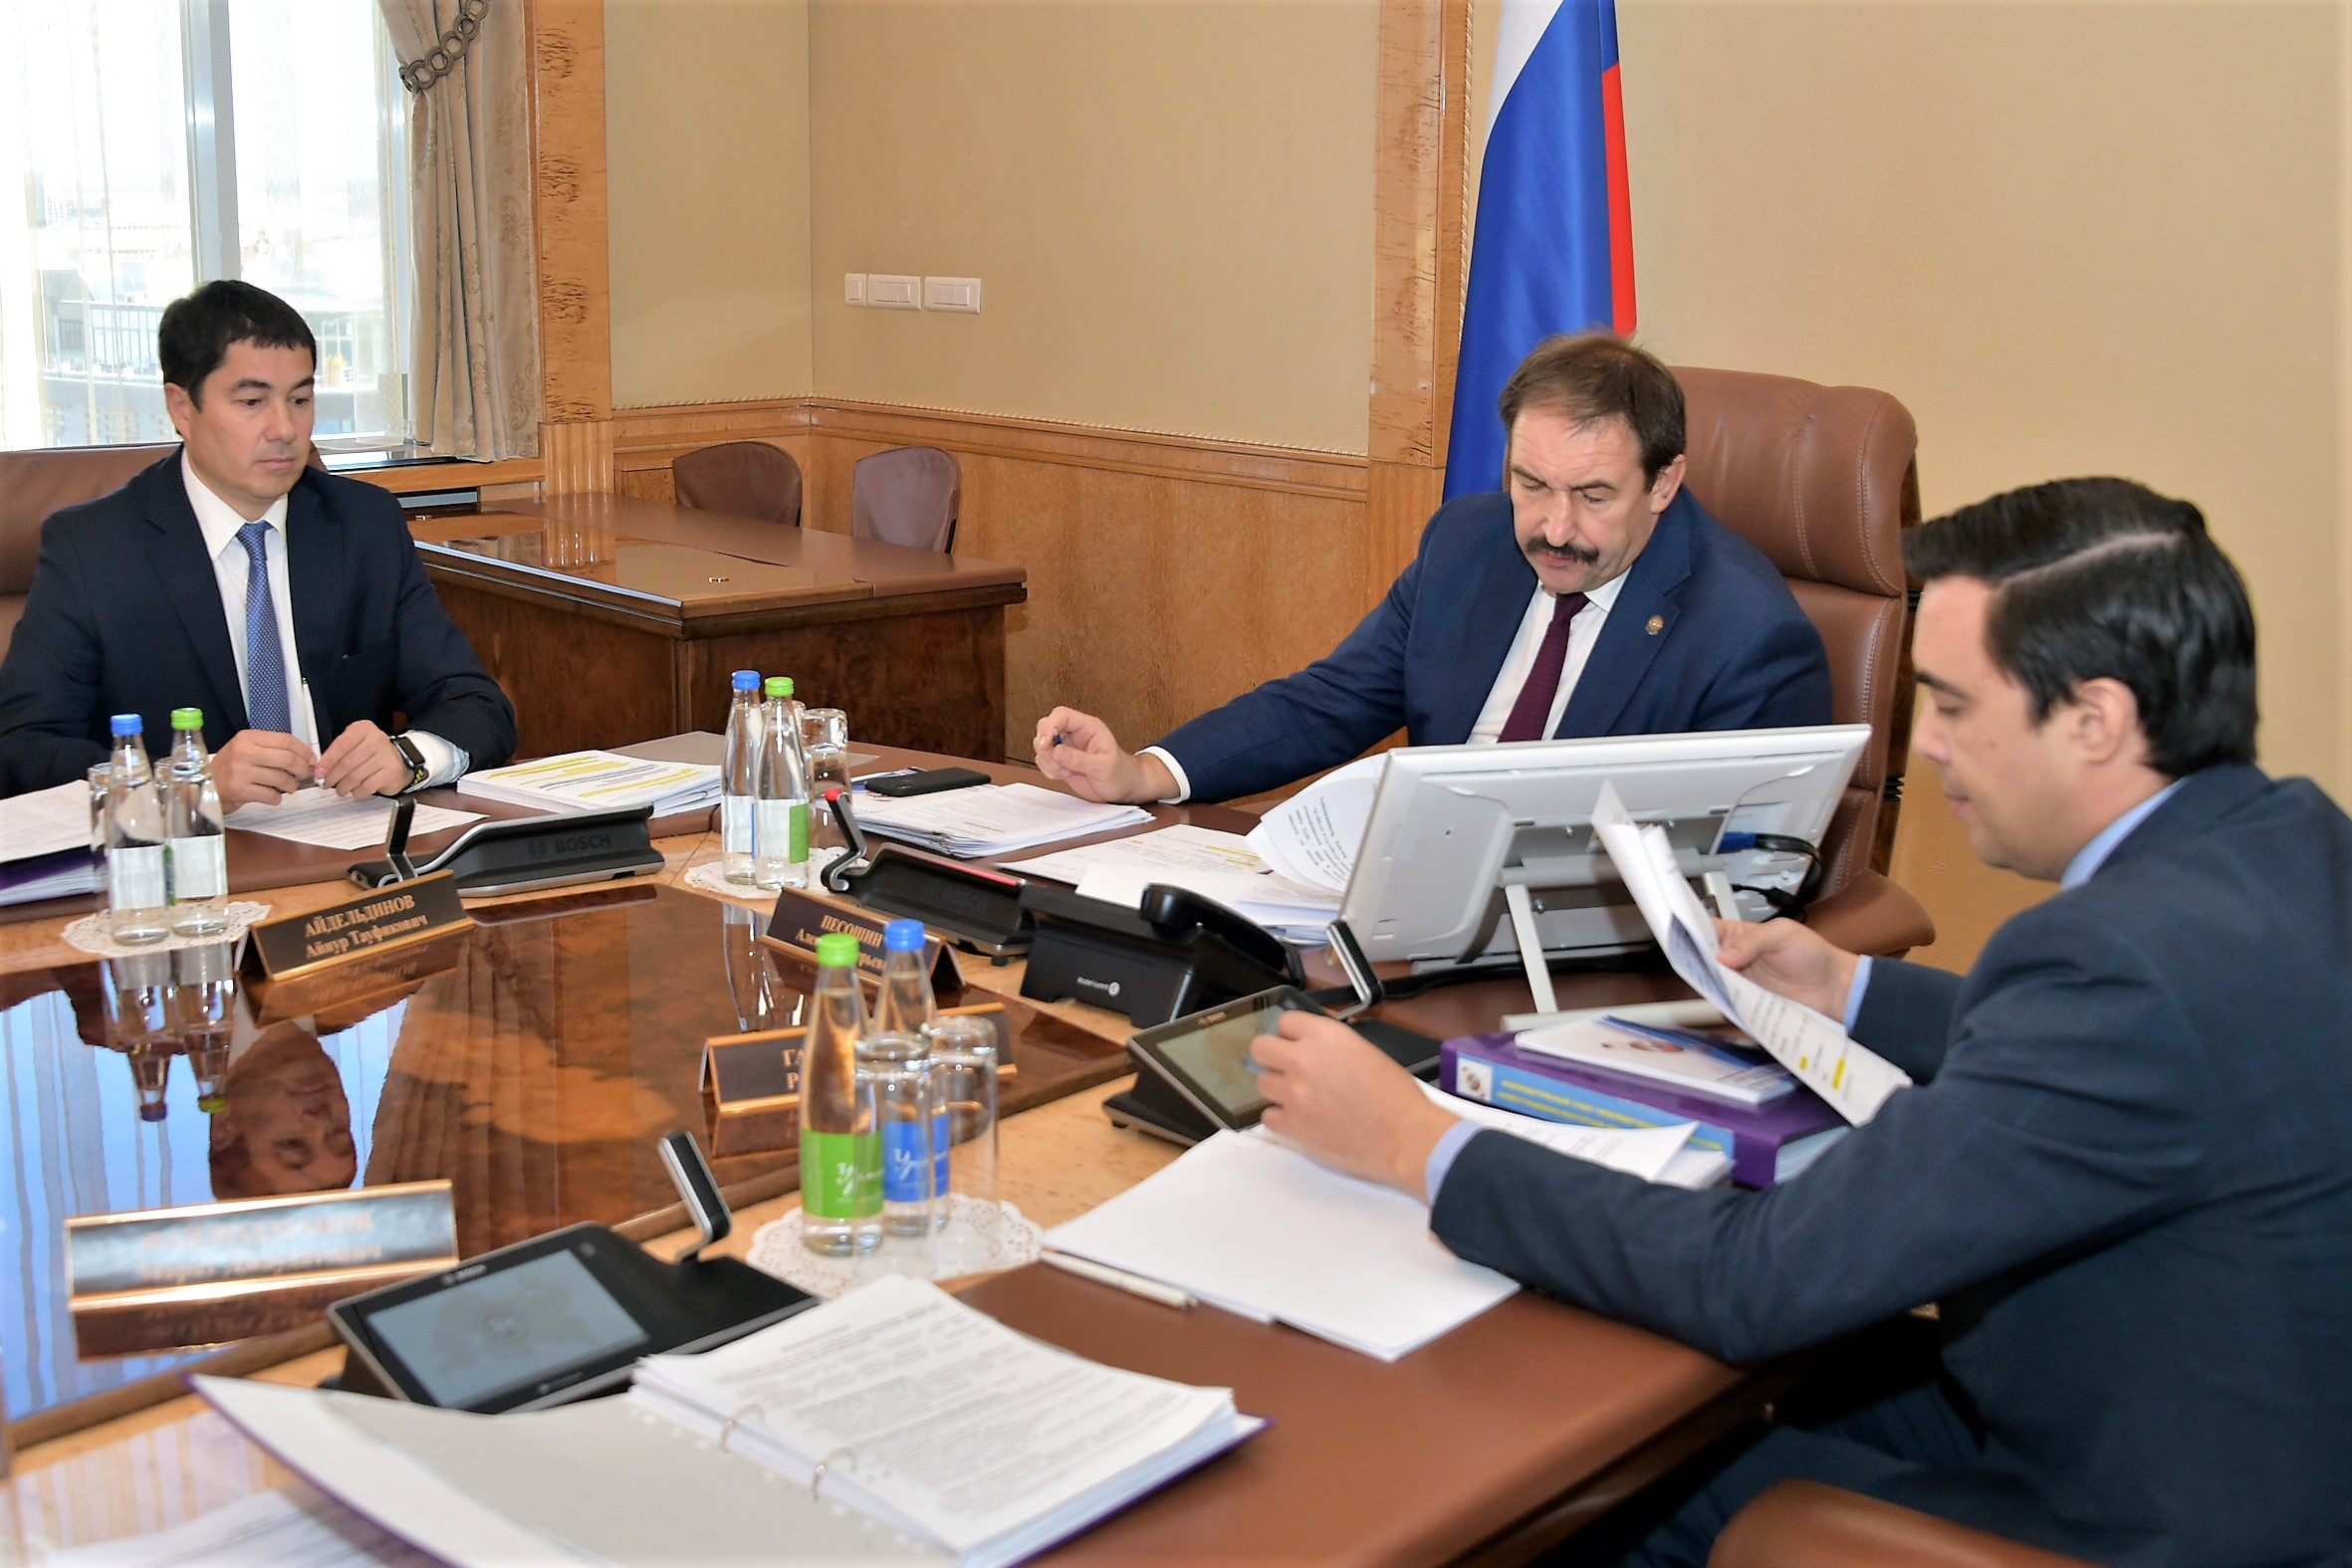 Meeting of the Supervisory Board of the RT Investment and Venture Fund was held under the chairmanship of Aleksey Pesoshin, the Prime Minister of the Republic of Tatarstan.